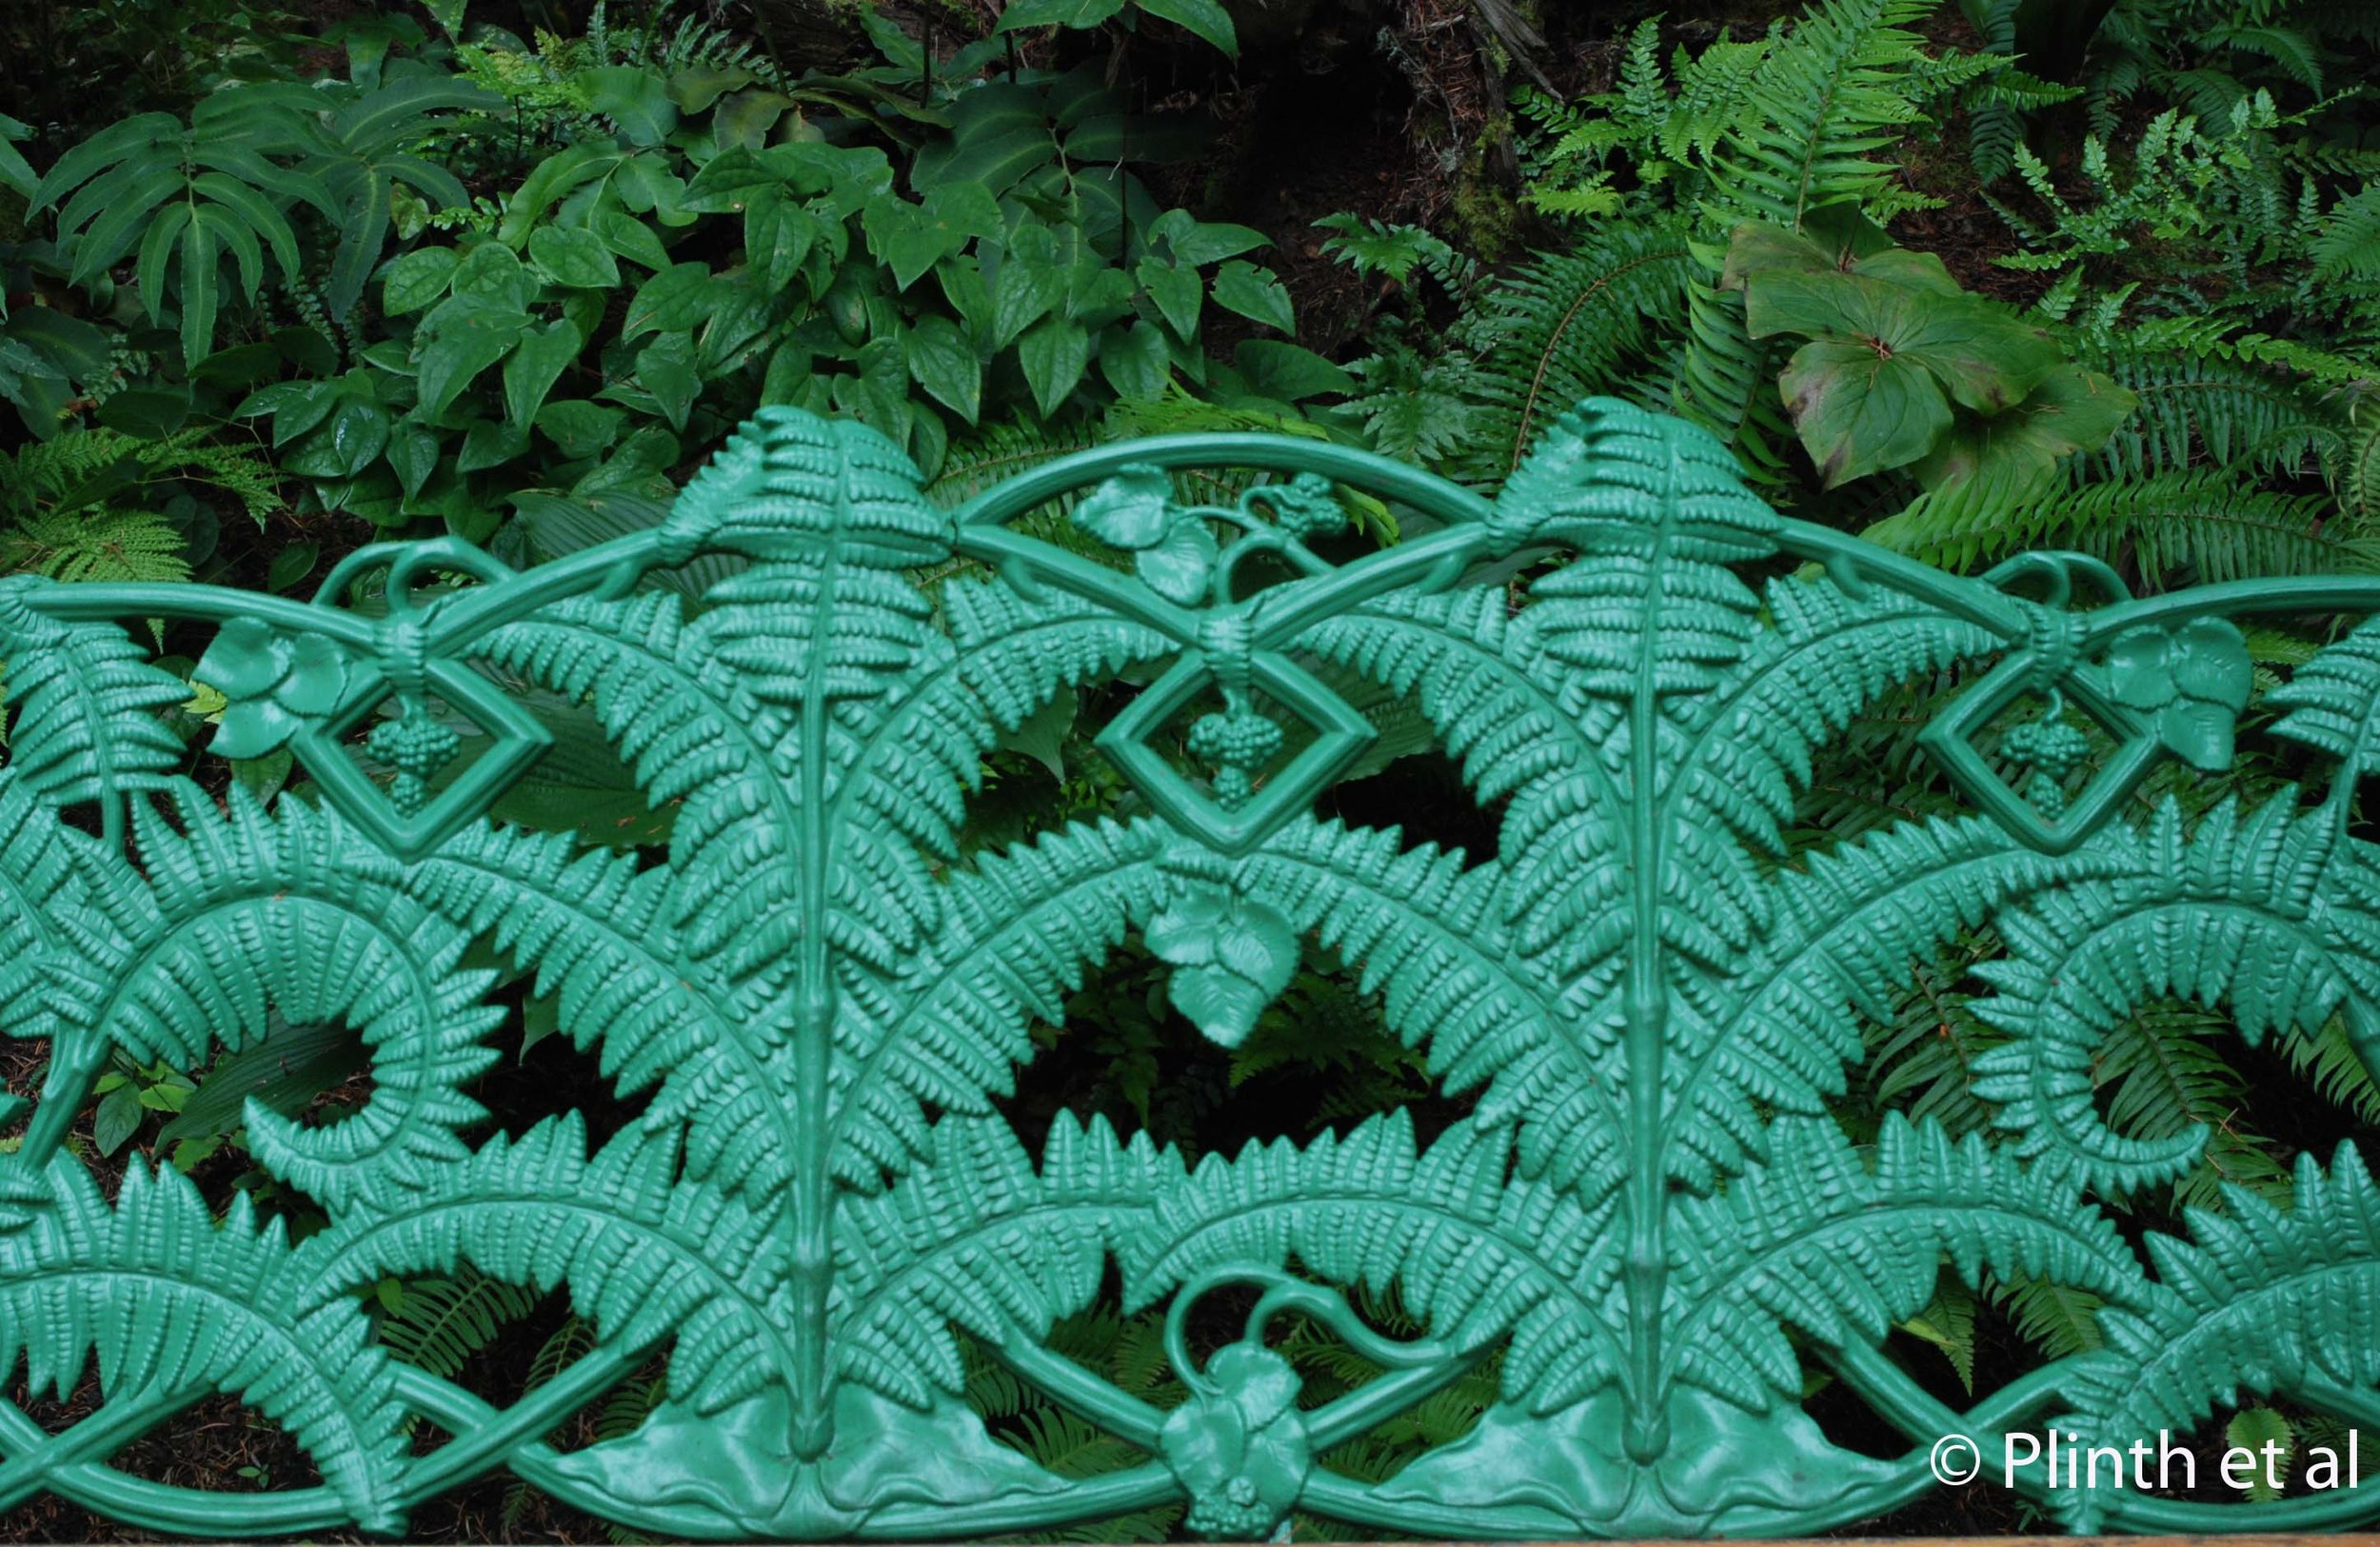 A replica of the Coalbrookdale 'Fern and Blackberry' bench graces the Stumpery, taking pteridomania to another level.